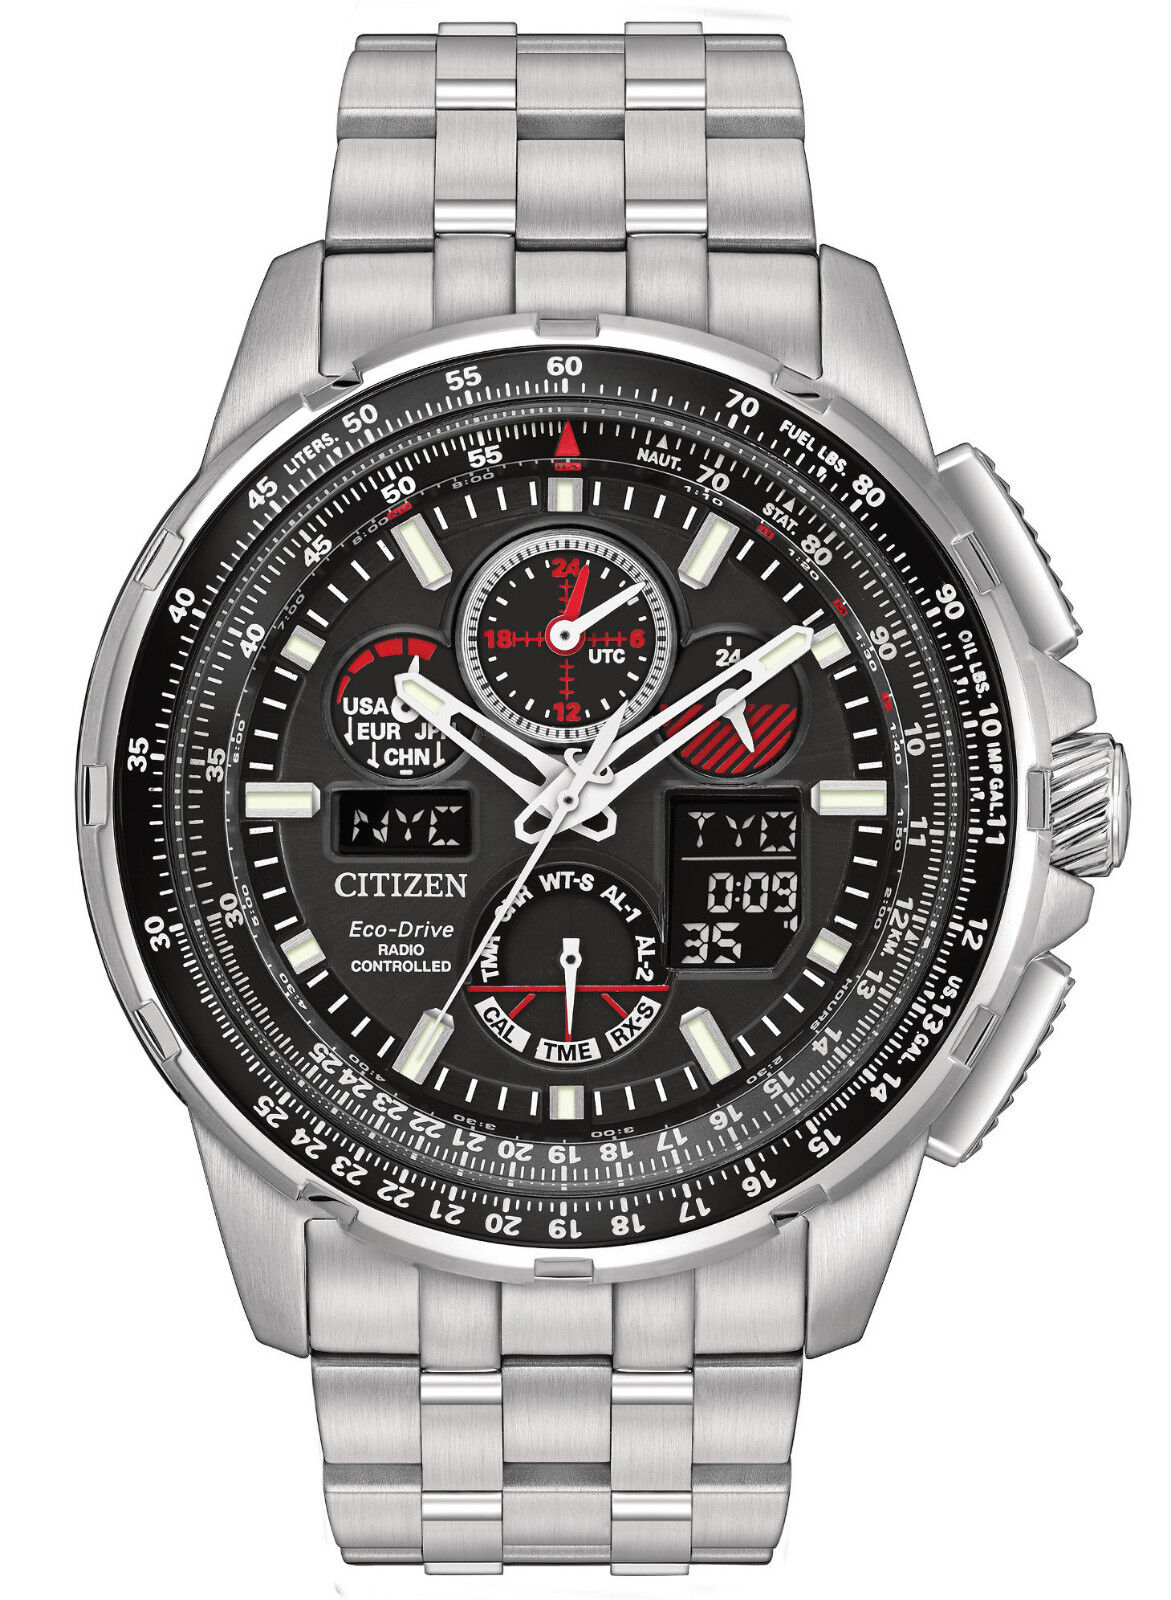 $366.20 - BRAND NEW CITIZEN ECO-DRIVE JY8050-51E SKYHAWK AT BLACK DIAL RED ACCENT